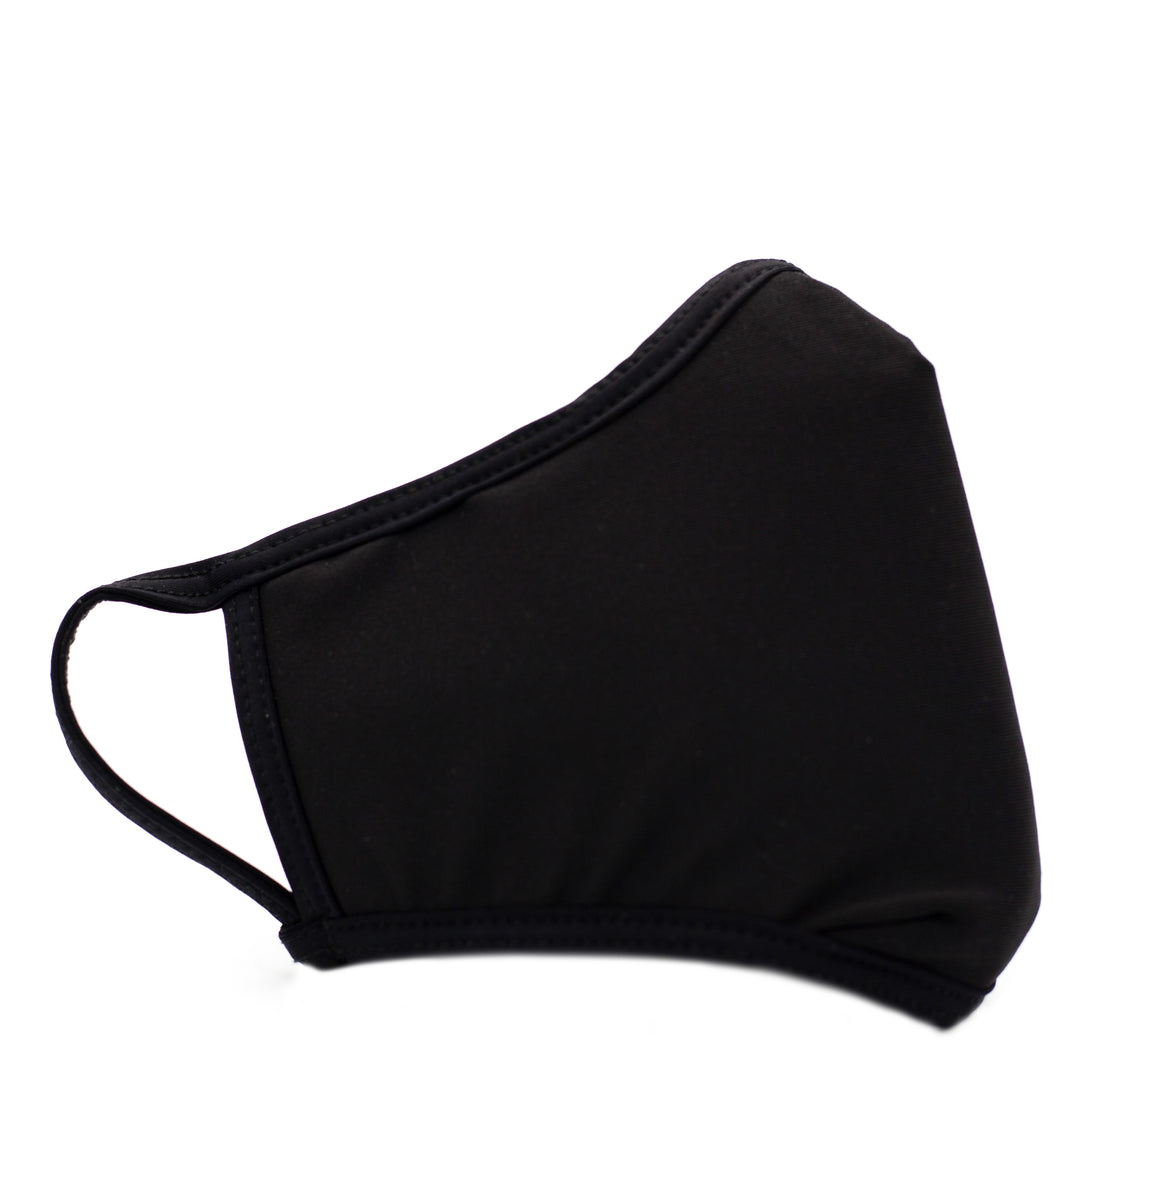 PROTECTIVE FACE COVERING MASK - SNUG FIT  #100 MASK